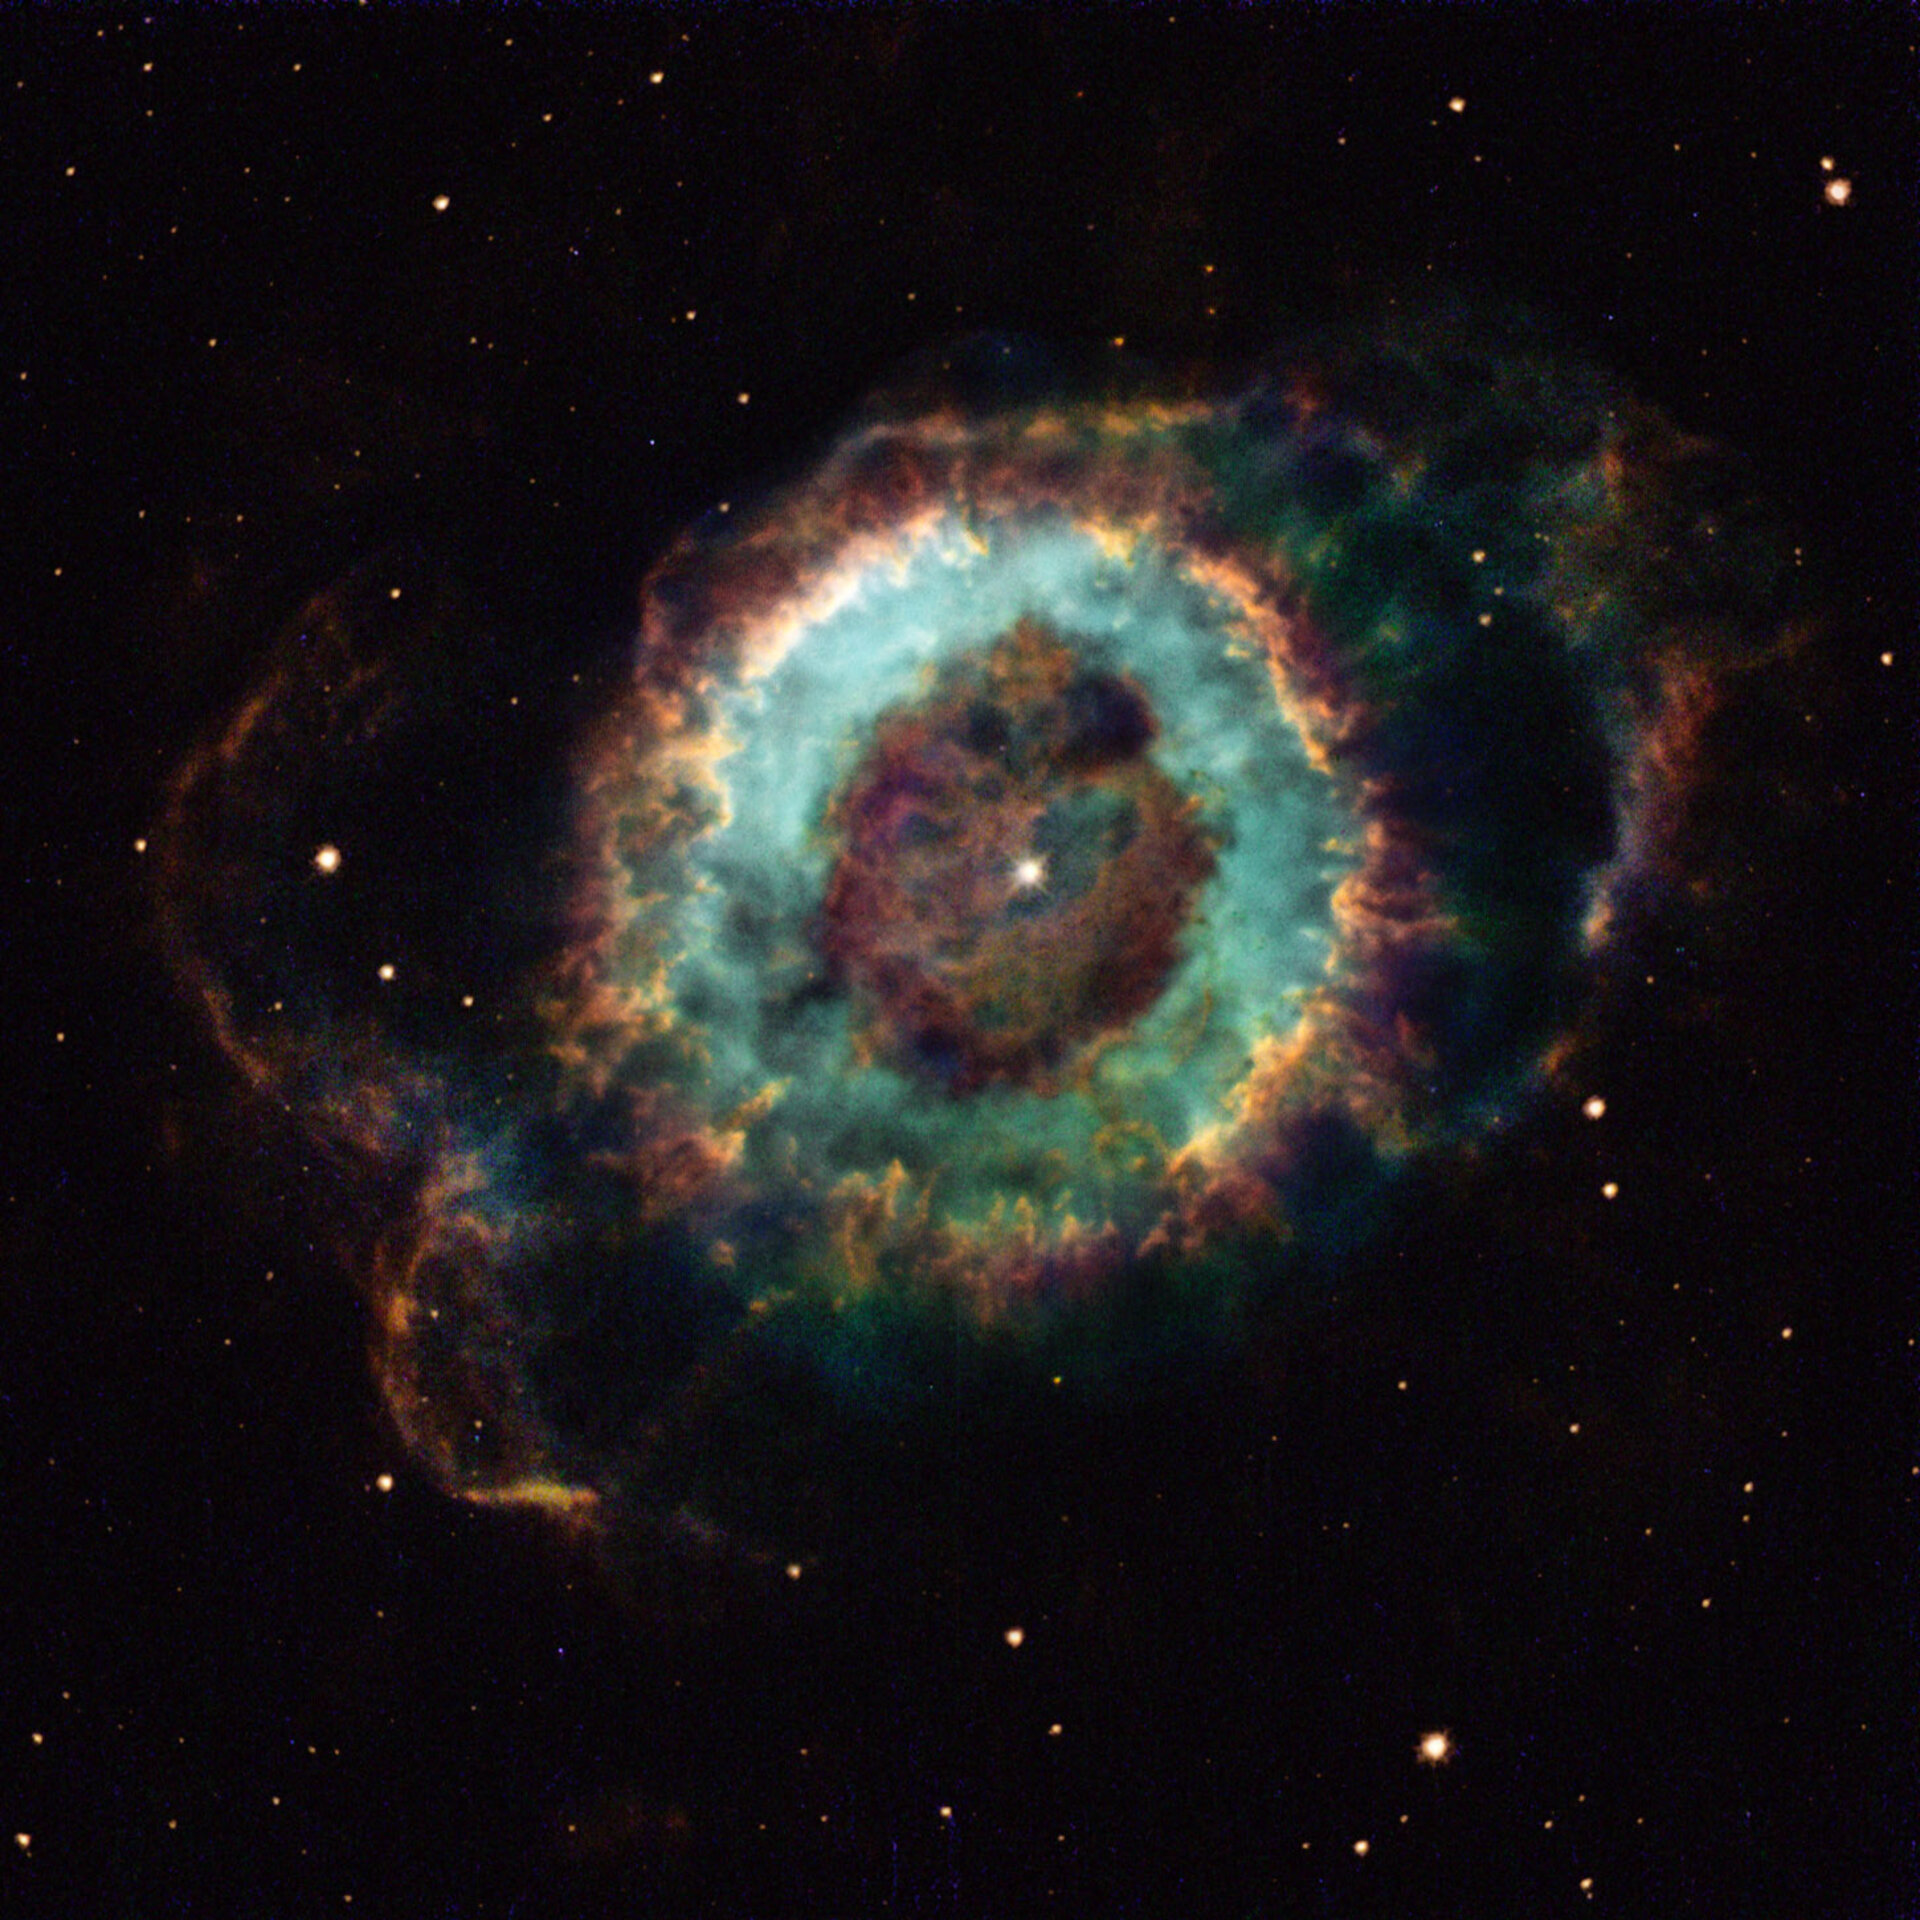 NGC 6369, a cosmic ghost